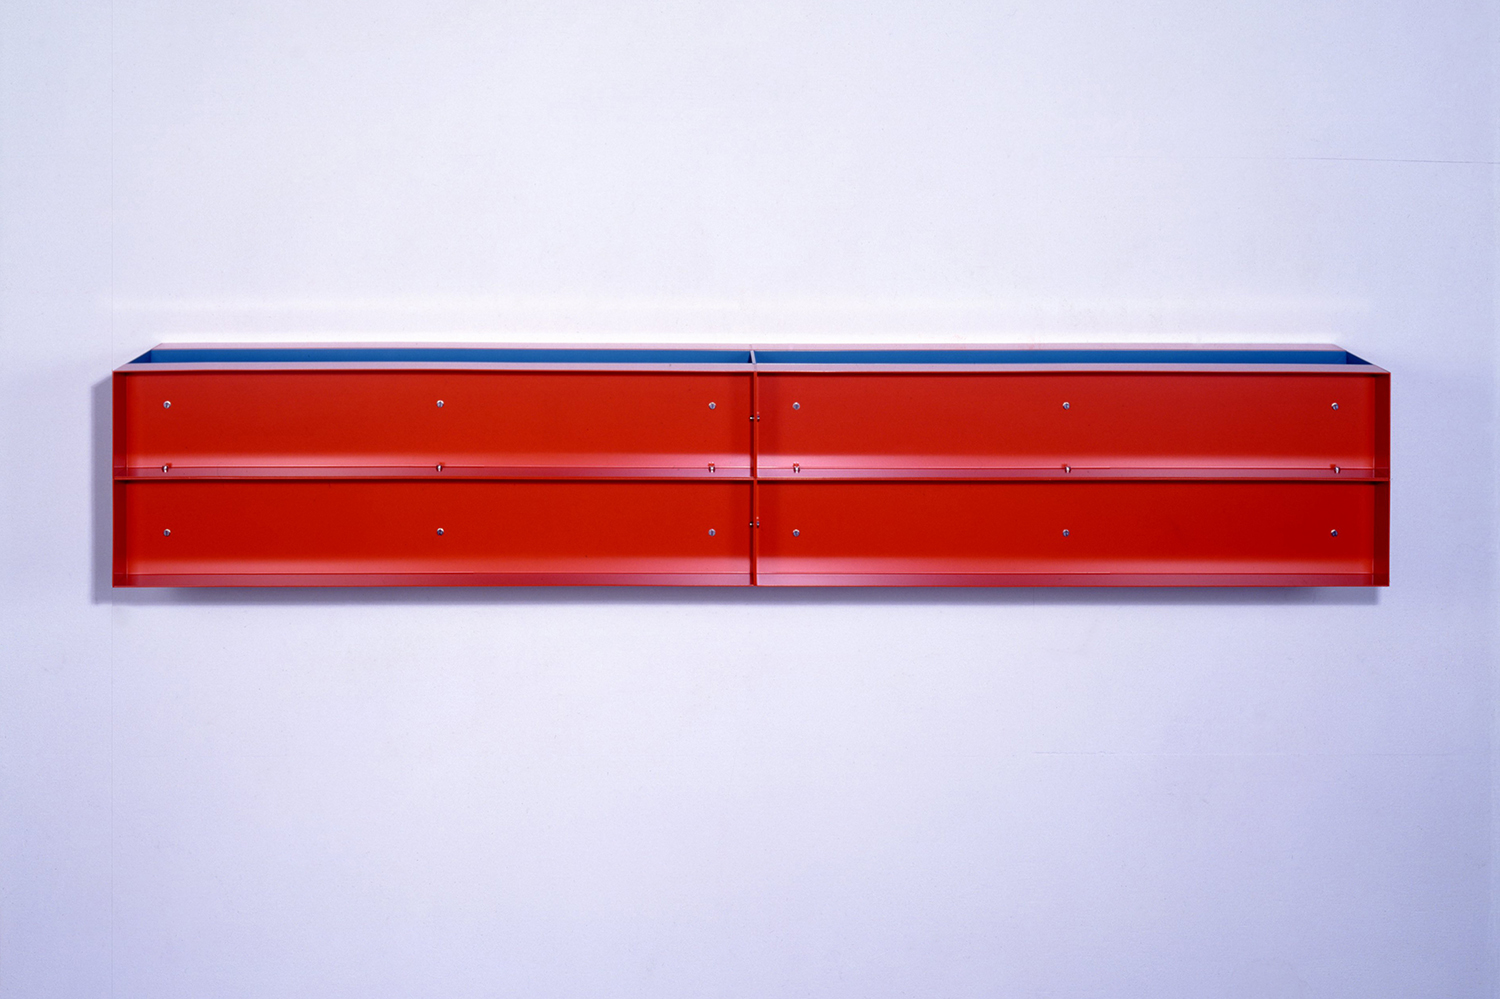 Untitled Red and Blue 1989|painted aluminum wall sculpture|30 x 180 x 30 cm